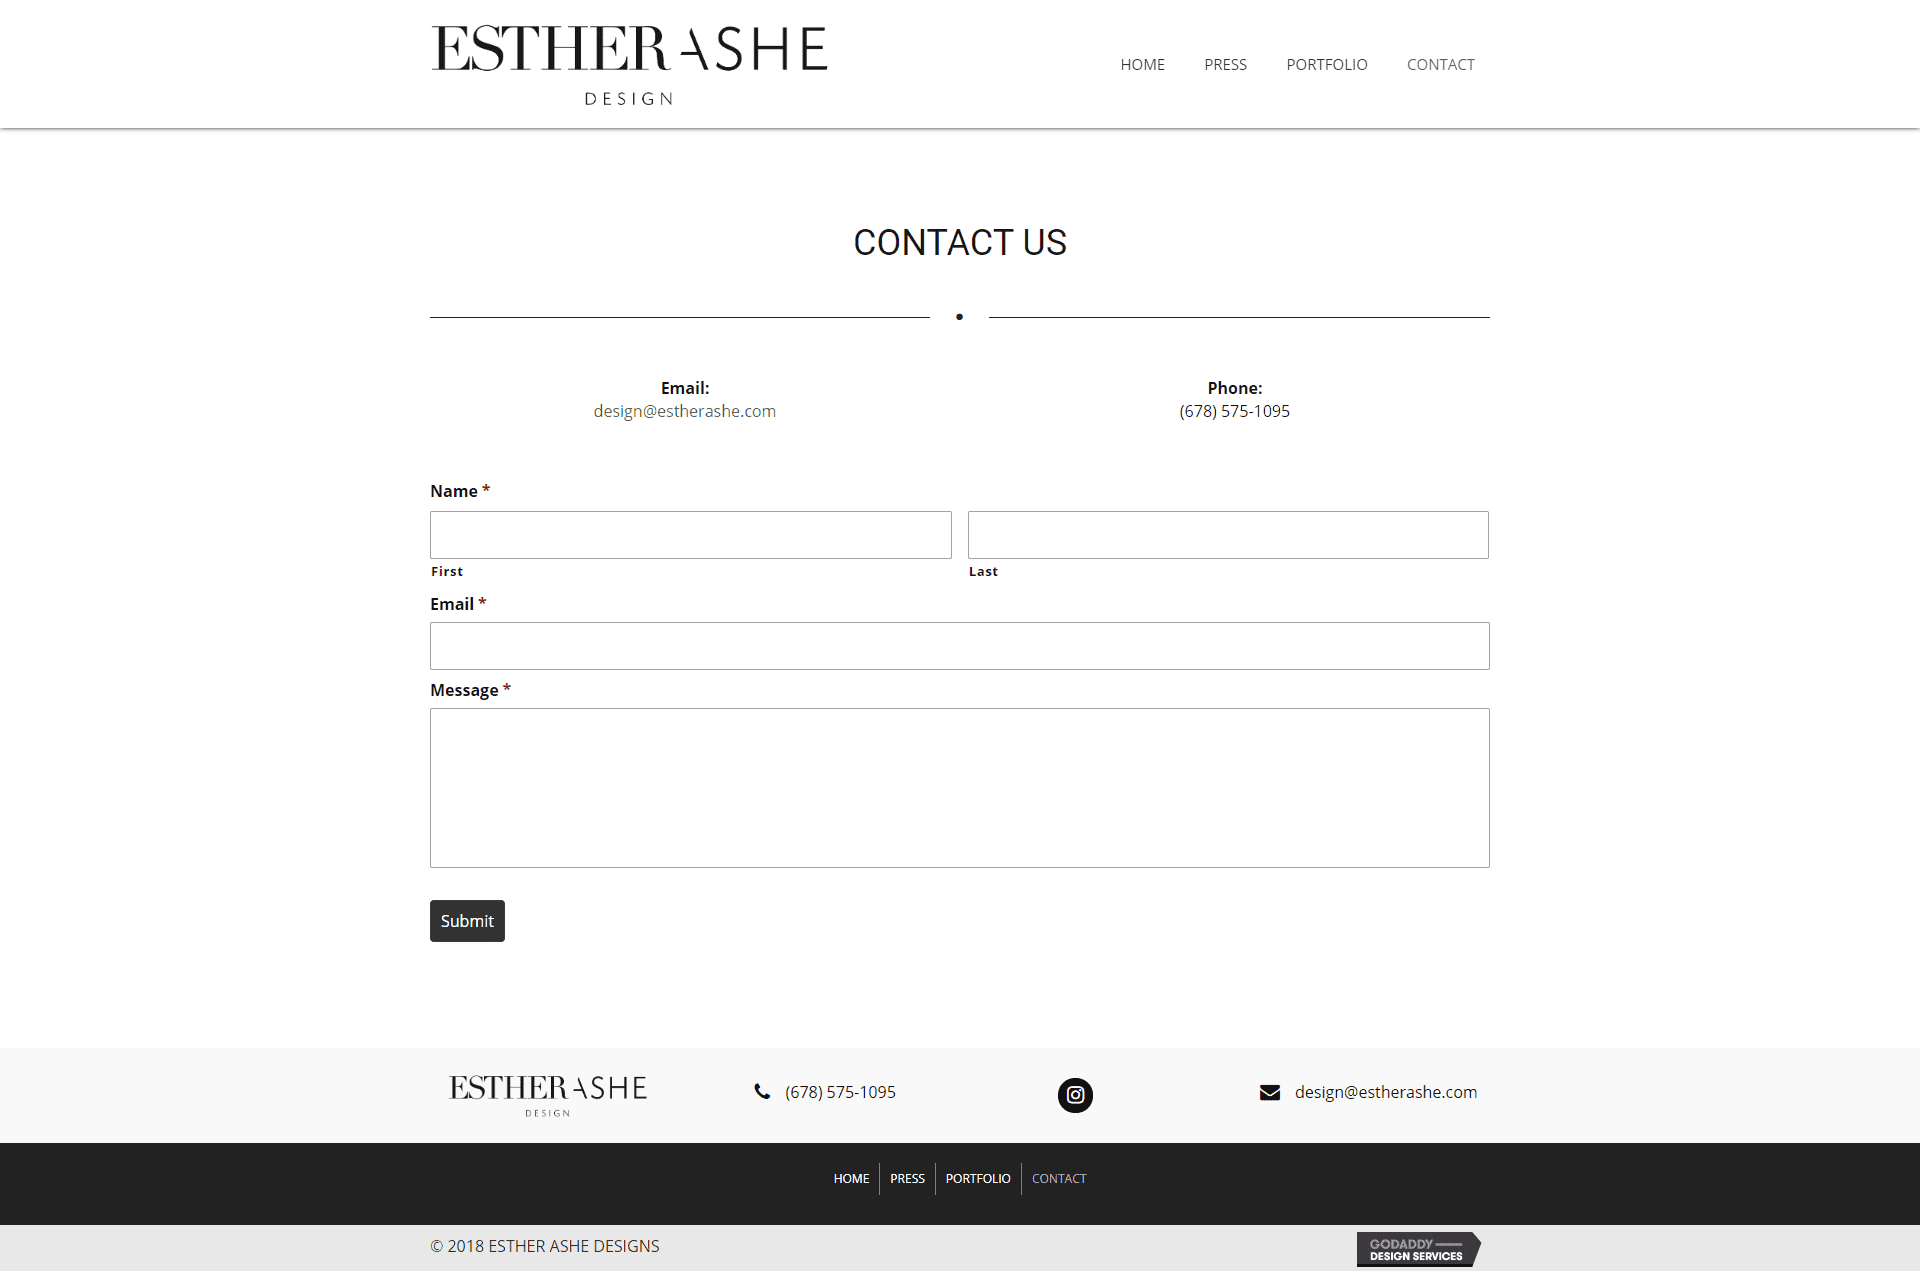 screencapture-estherashe-contact